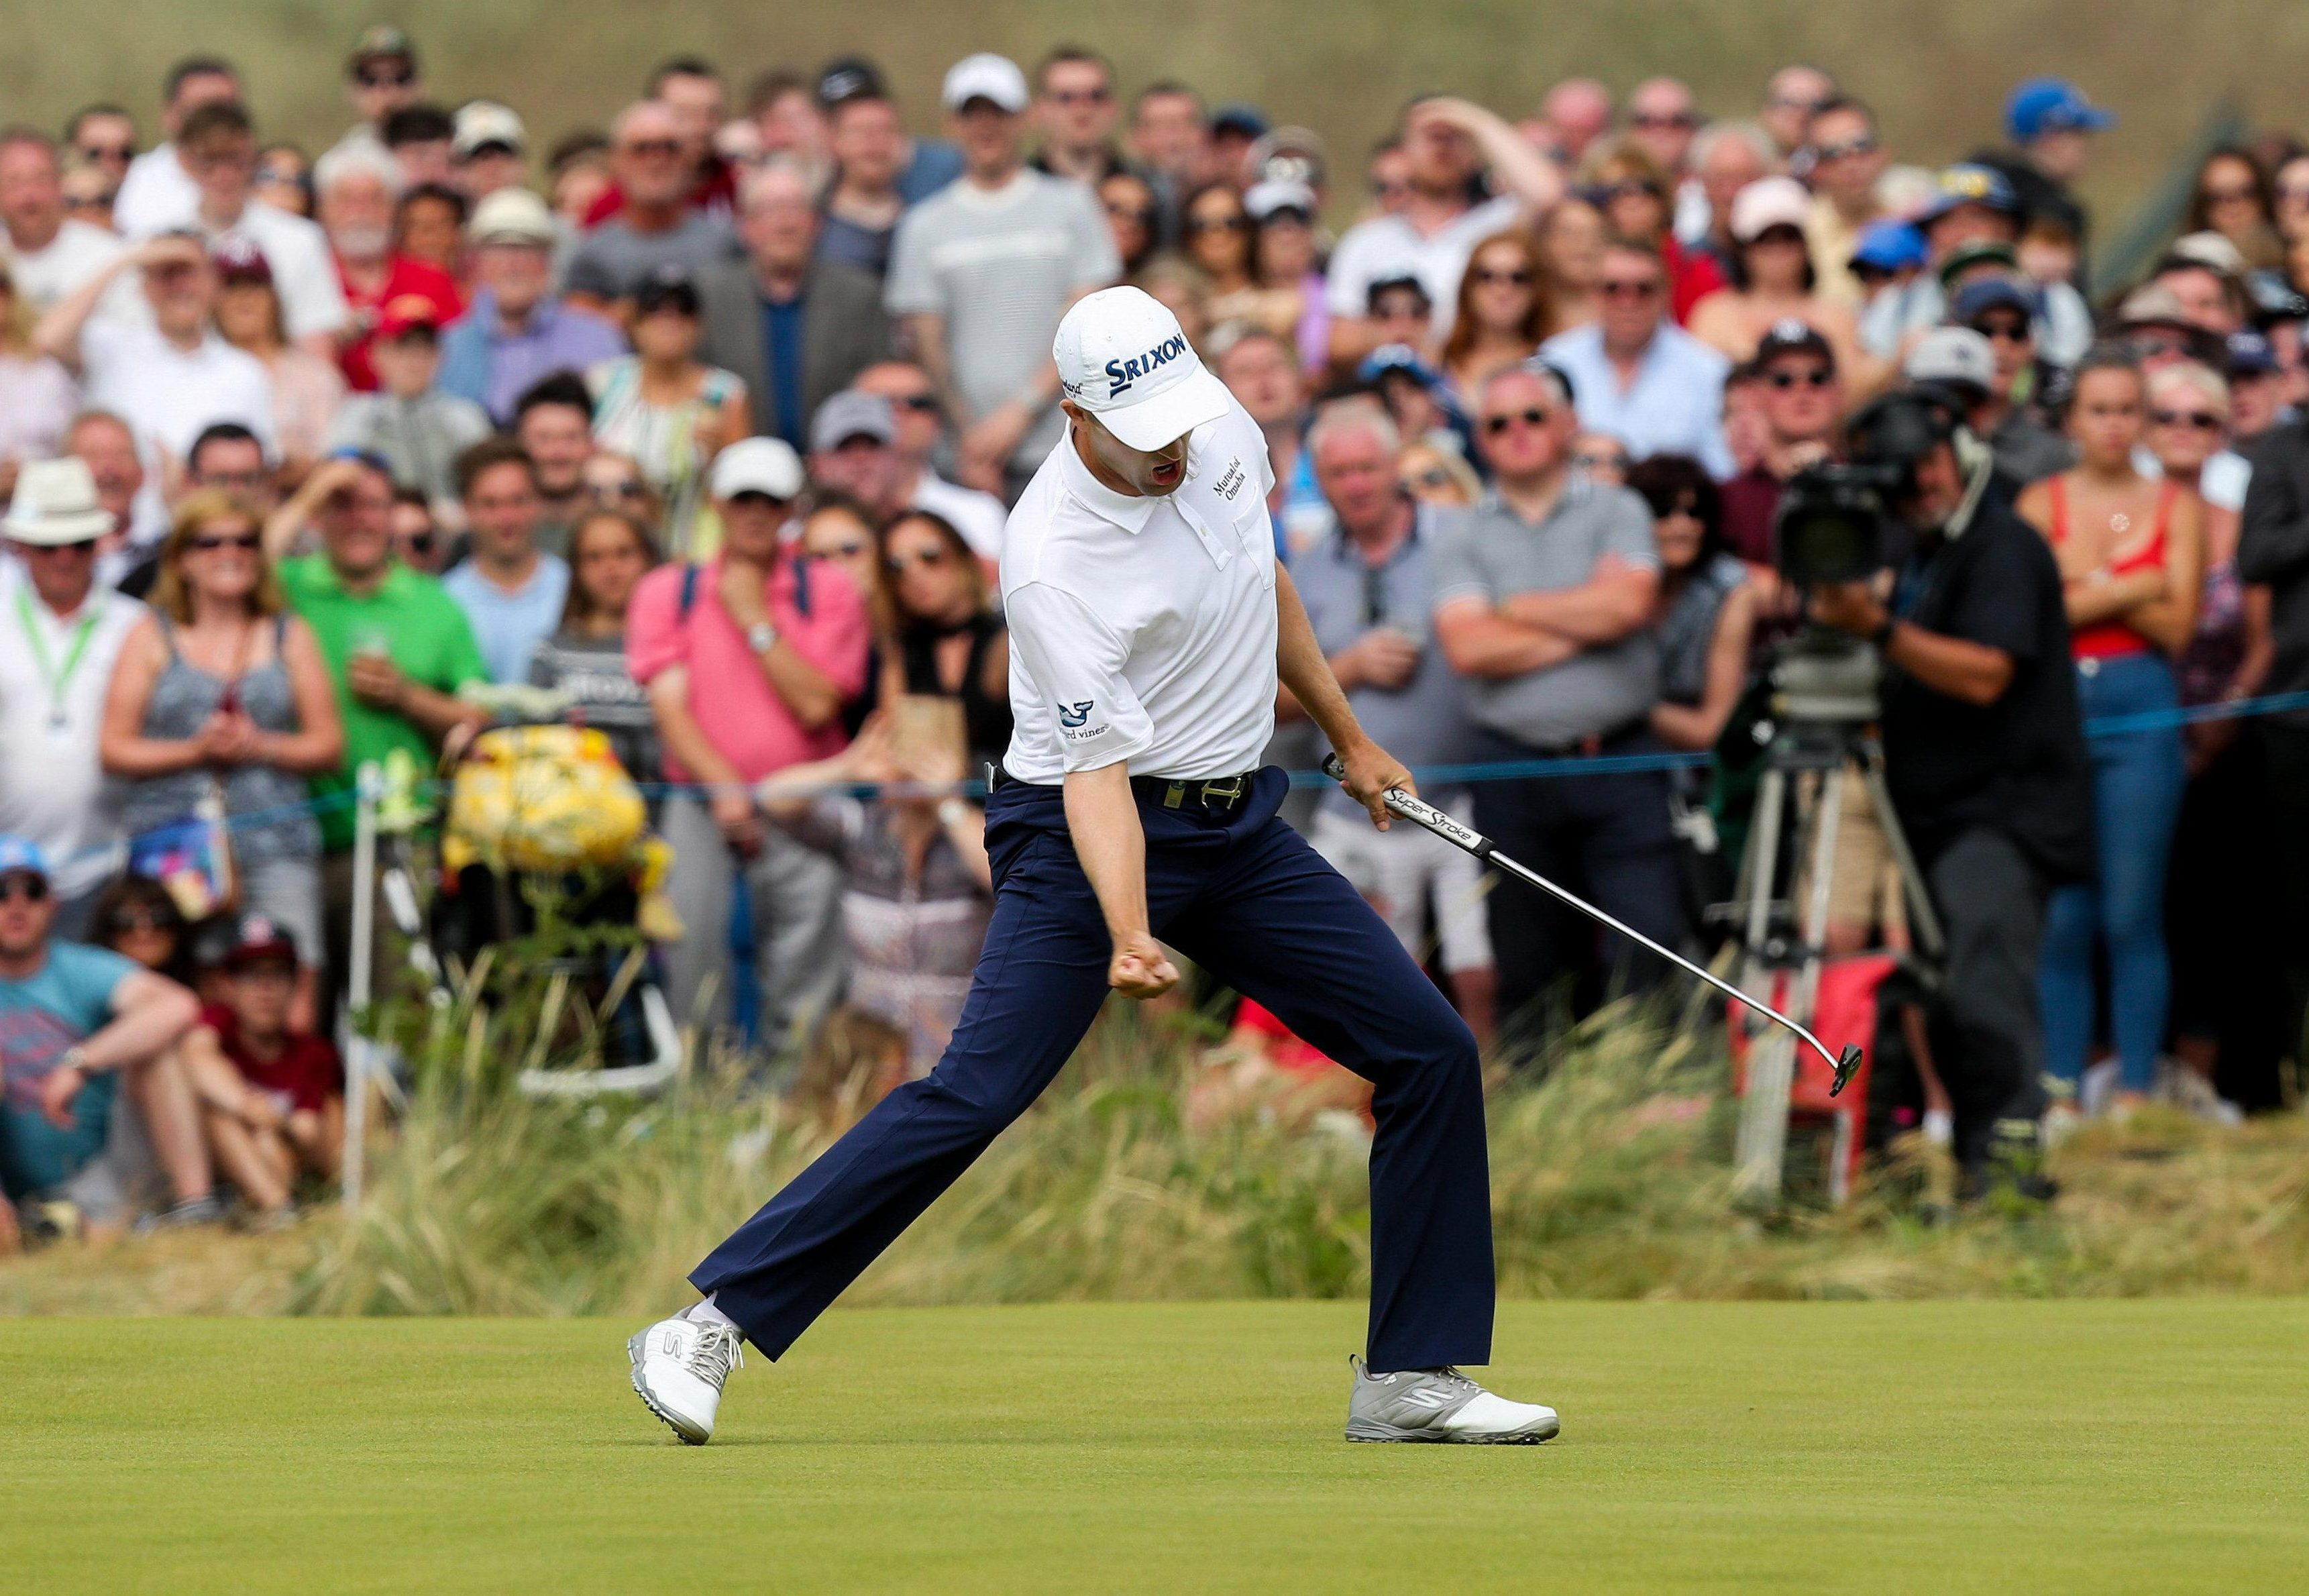 Scottish golfer Knox put himself into contention for the Ryder Cup